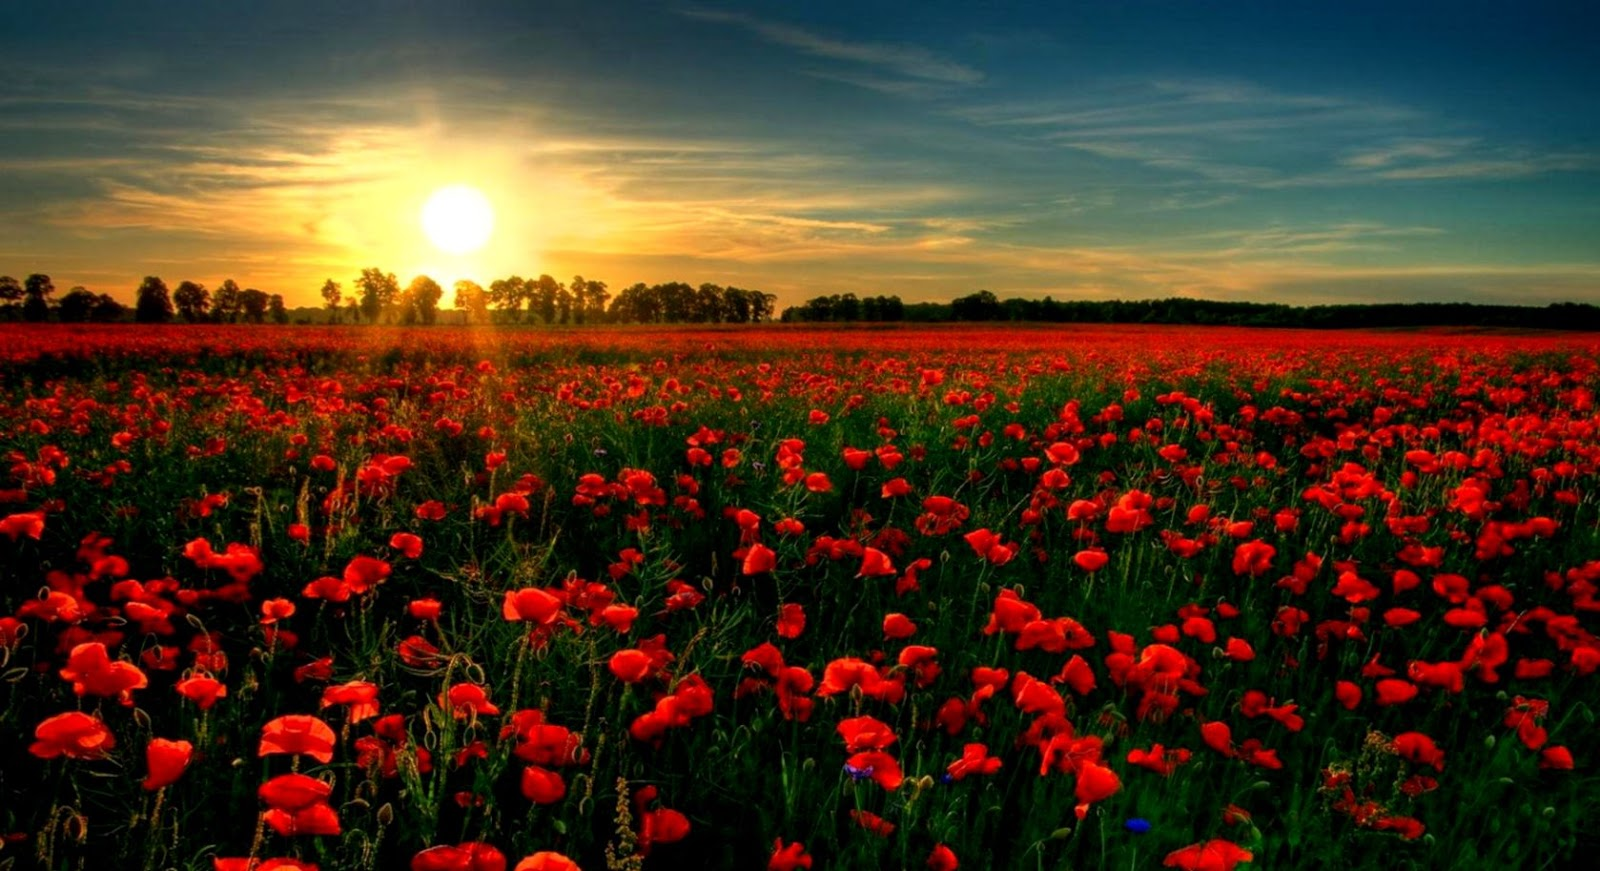 Poppies Red Flowers Field Nature Hd Wallpaper Wallpapers Titan